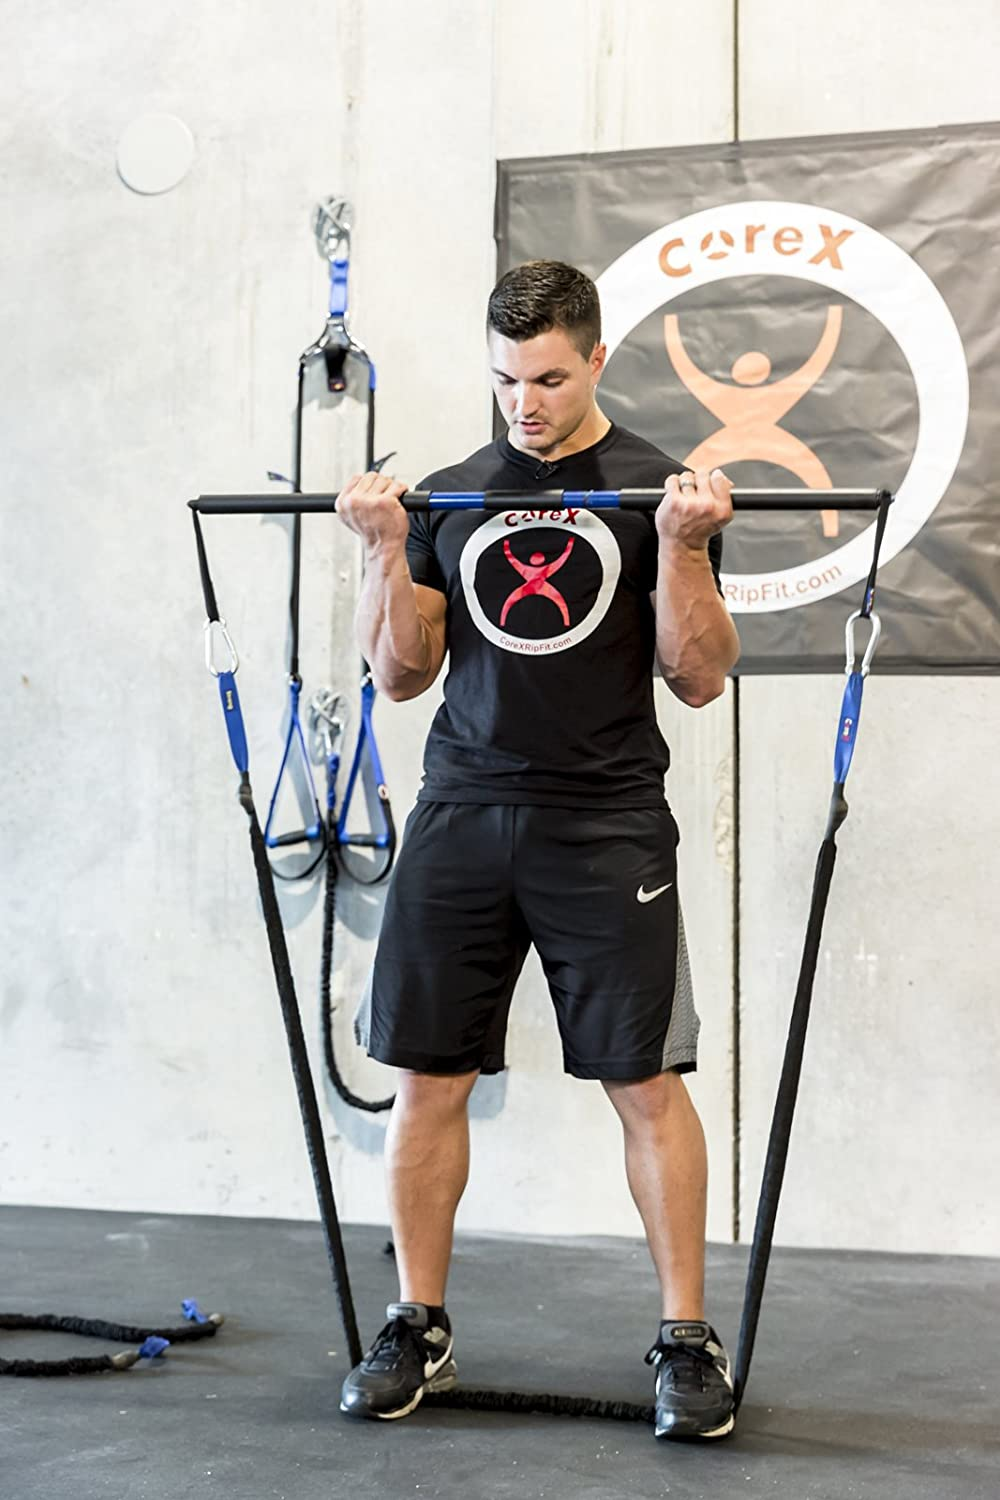 CoreX RipFit Trainer/Functional Fitness Stick by